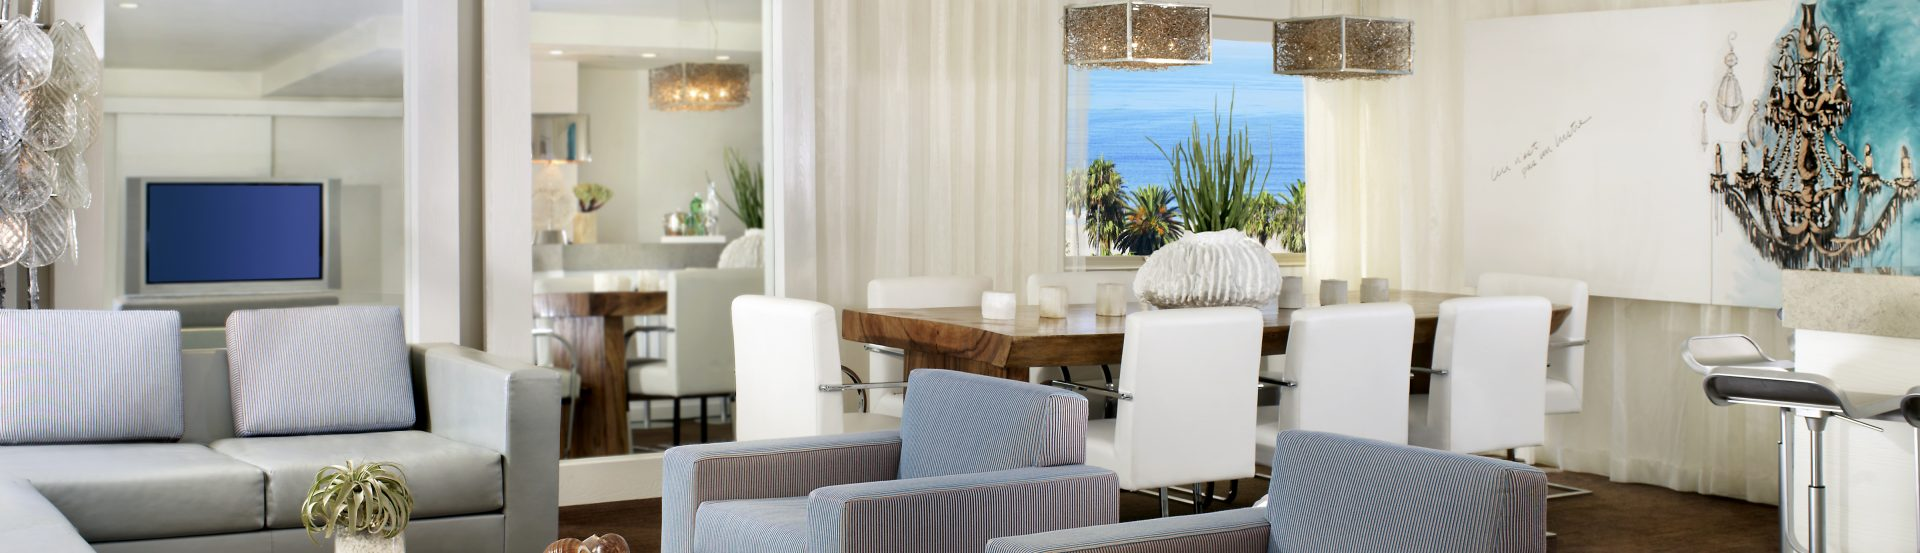 Amenities REVEL IN THE FINE AMENITIES OF OUR SANTA MONICA BEACH HOTEL